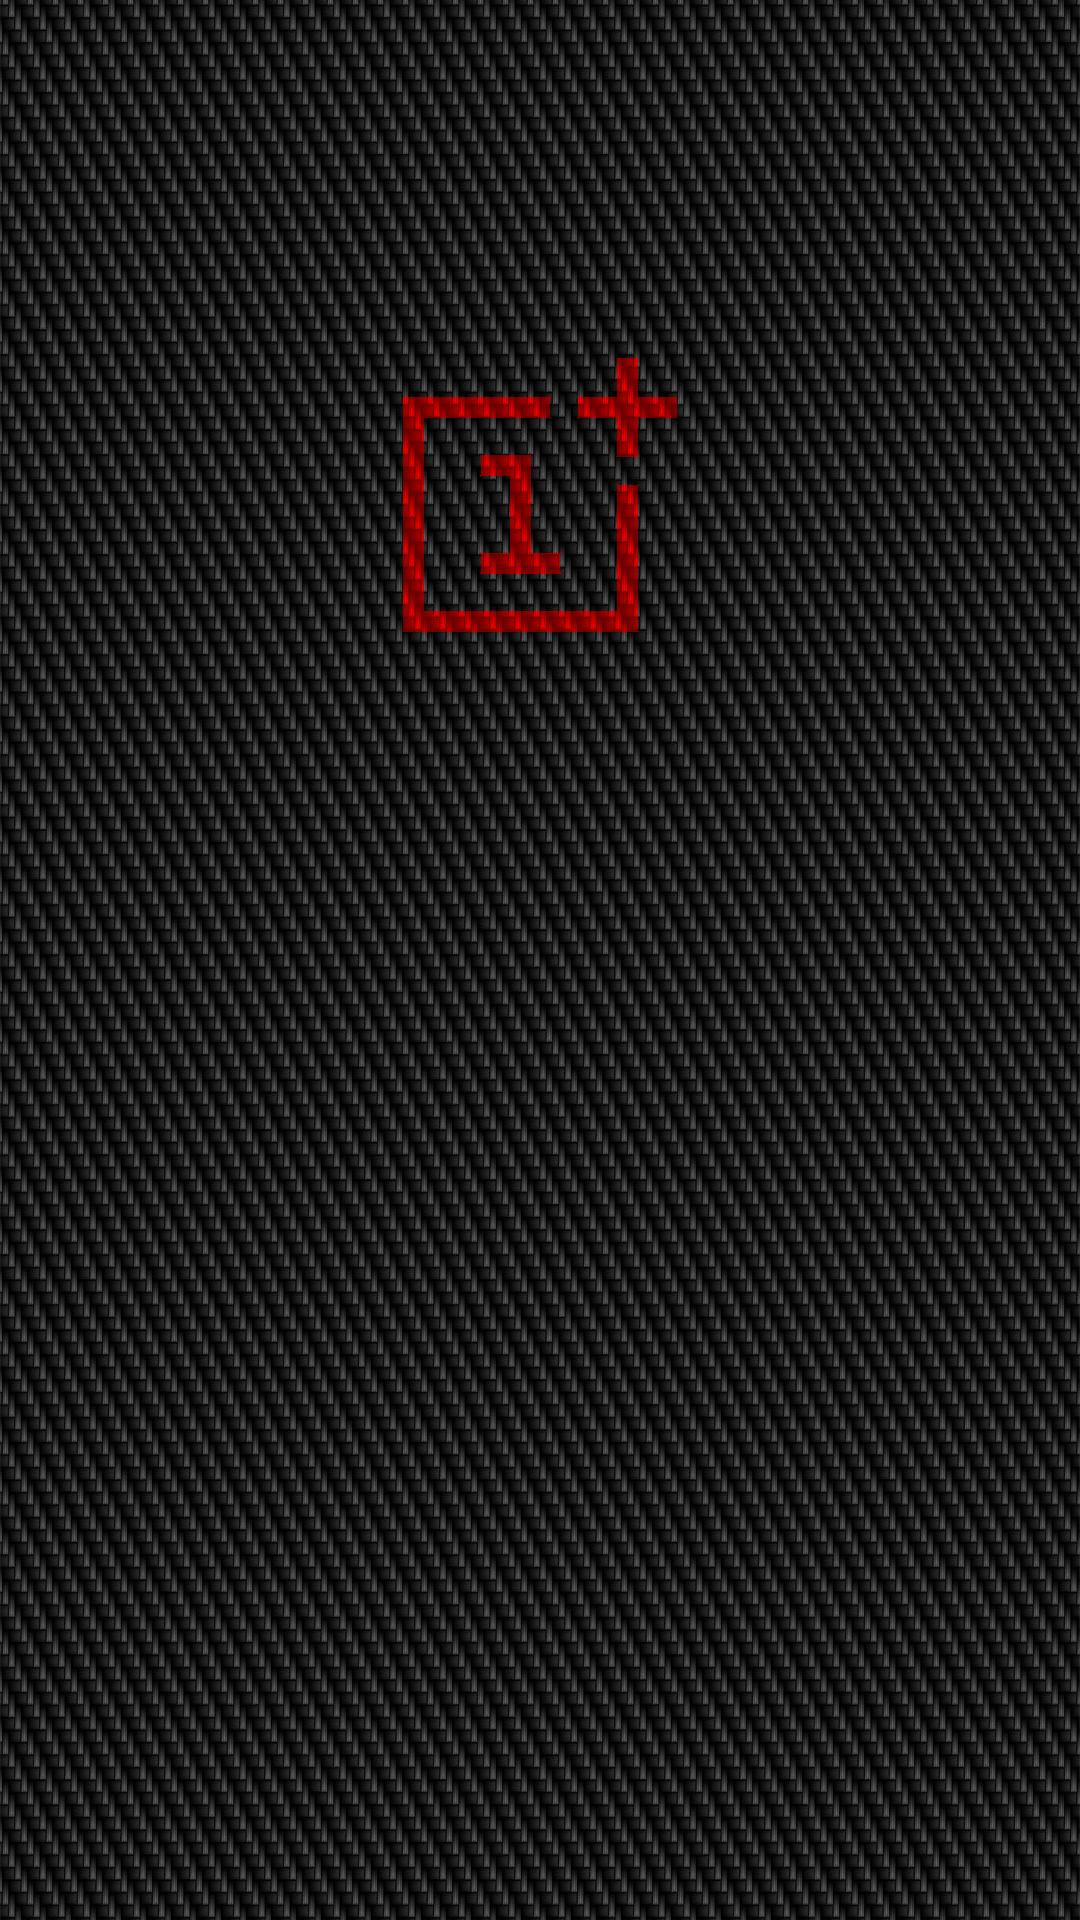 OnePlus Carbon Wallpaper   OnePlus Forums 1080x1920